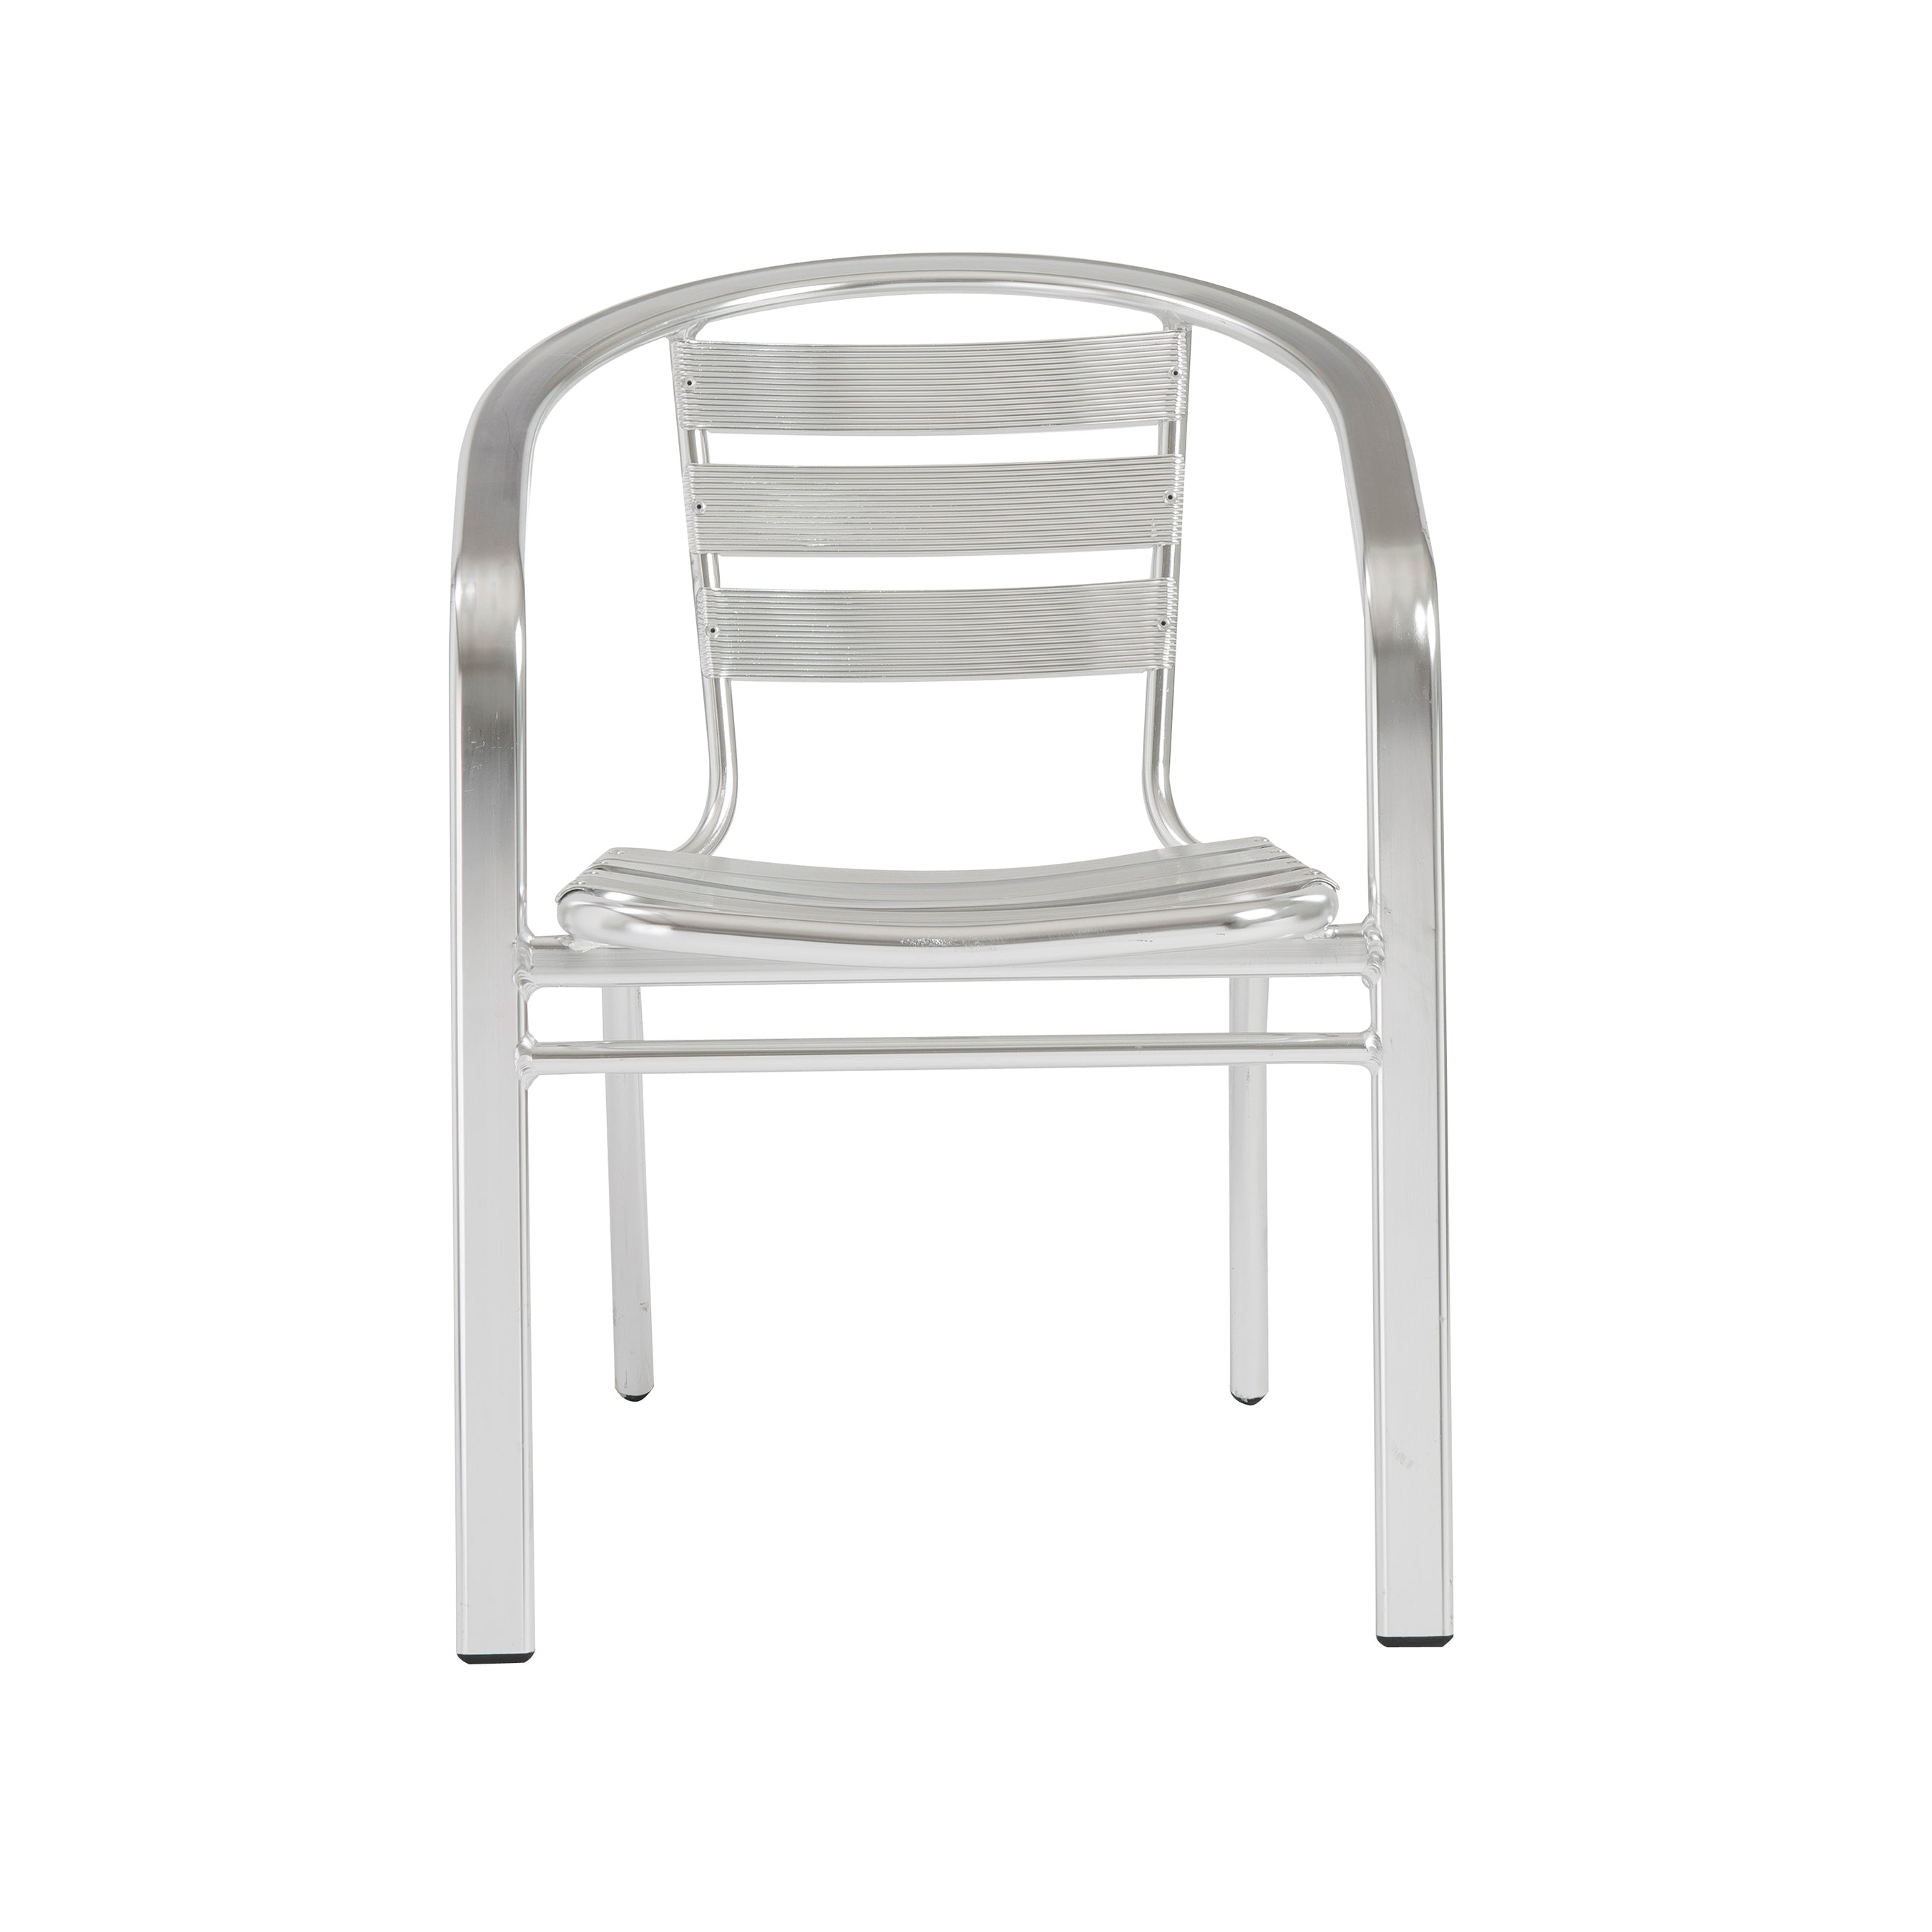 Polished Aluminum Guest or Conference Chairs w/ Casual Feel (Set of 6)